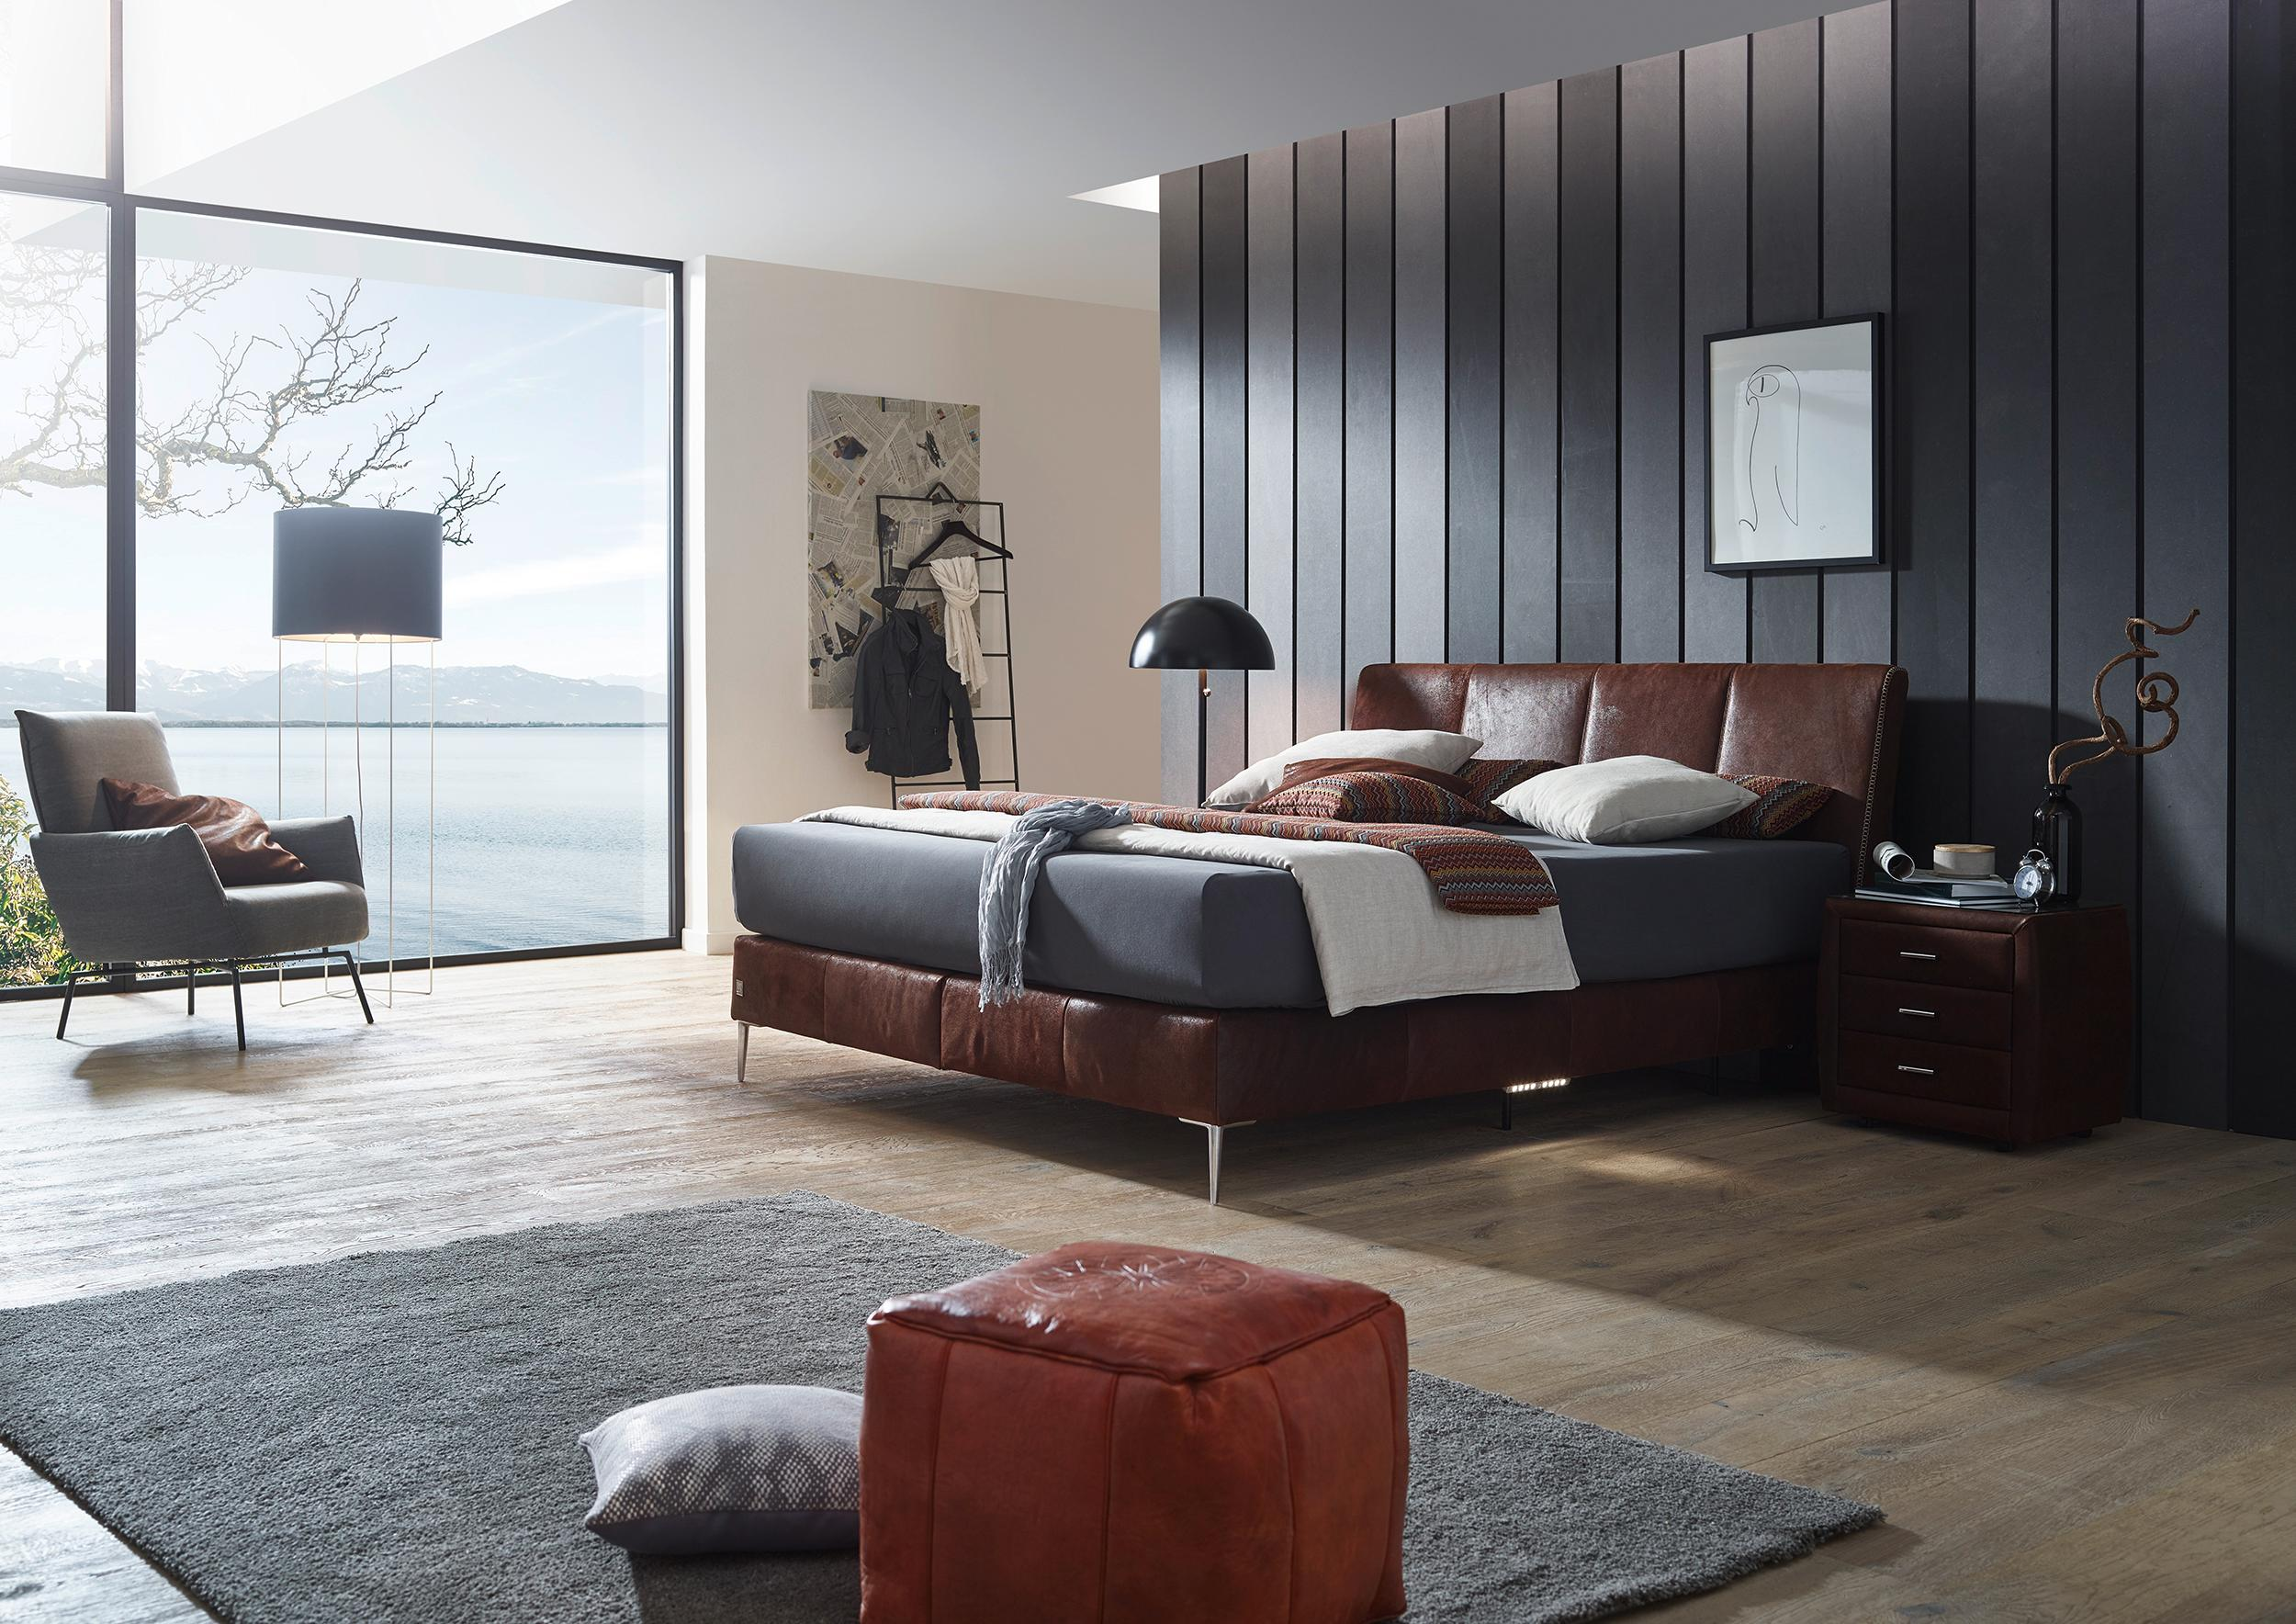 schlafzimmer wandgestaltung bilder ideen couch. Black Bedroom Furniture Sets. Home Design Ideas